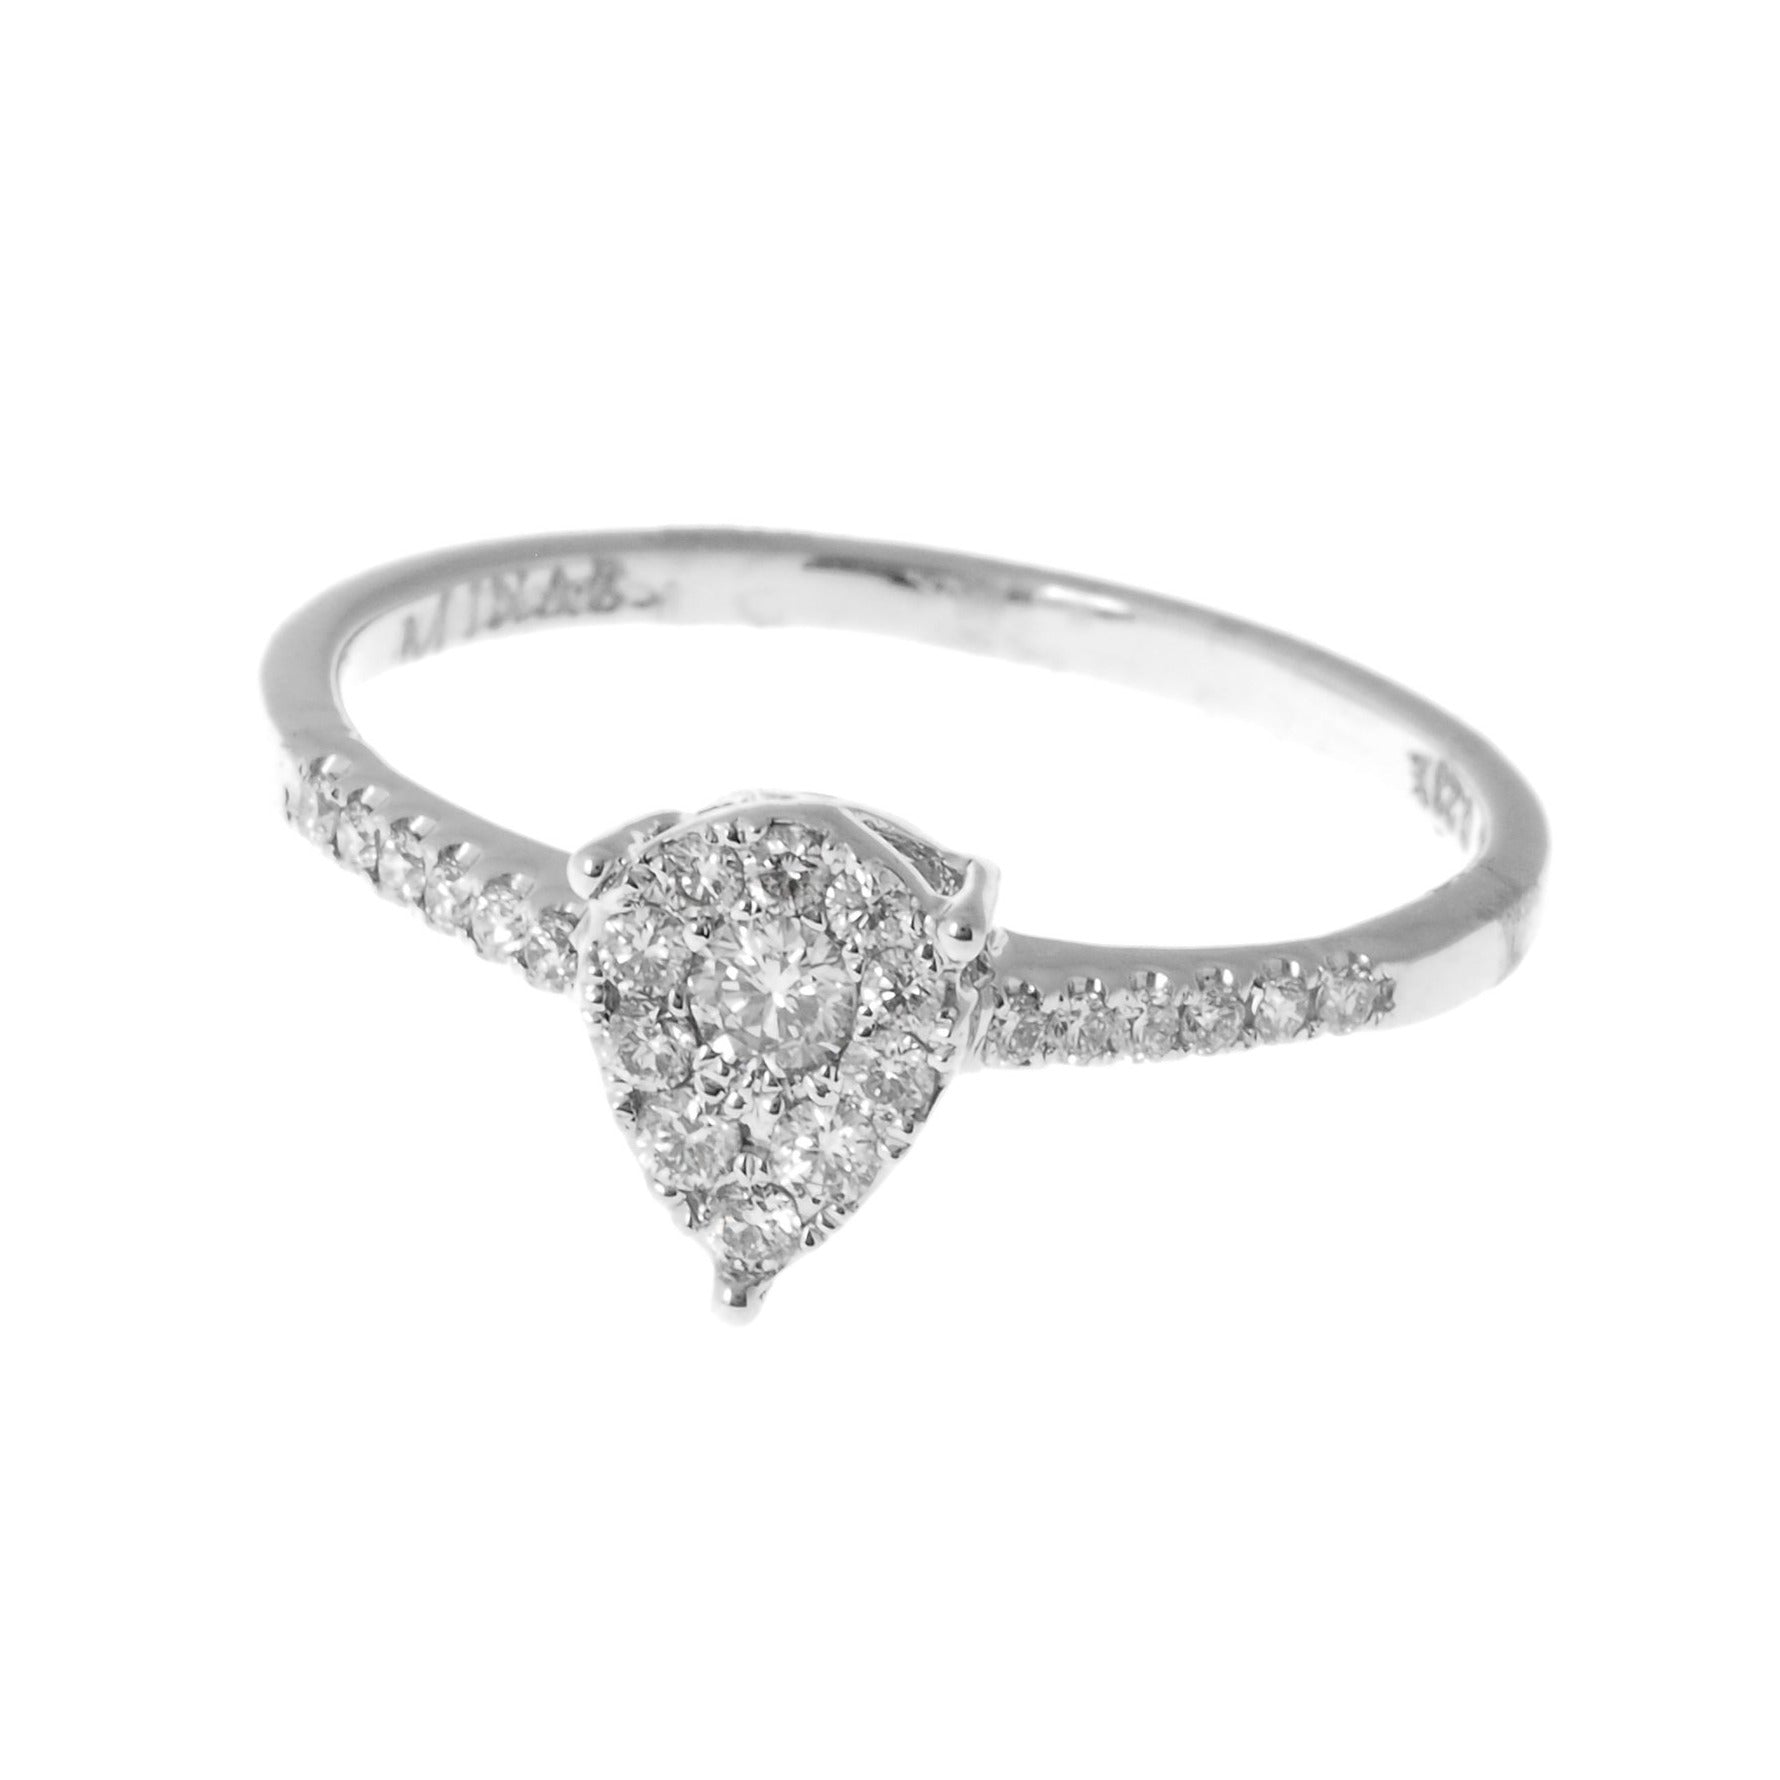 18ct White Gold Diamond Cluster Dress Ring (MCS2827)